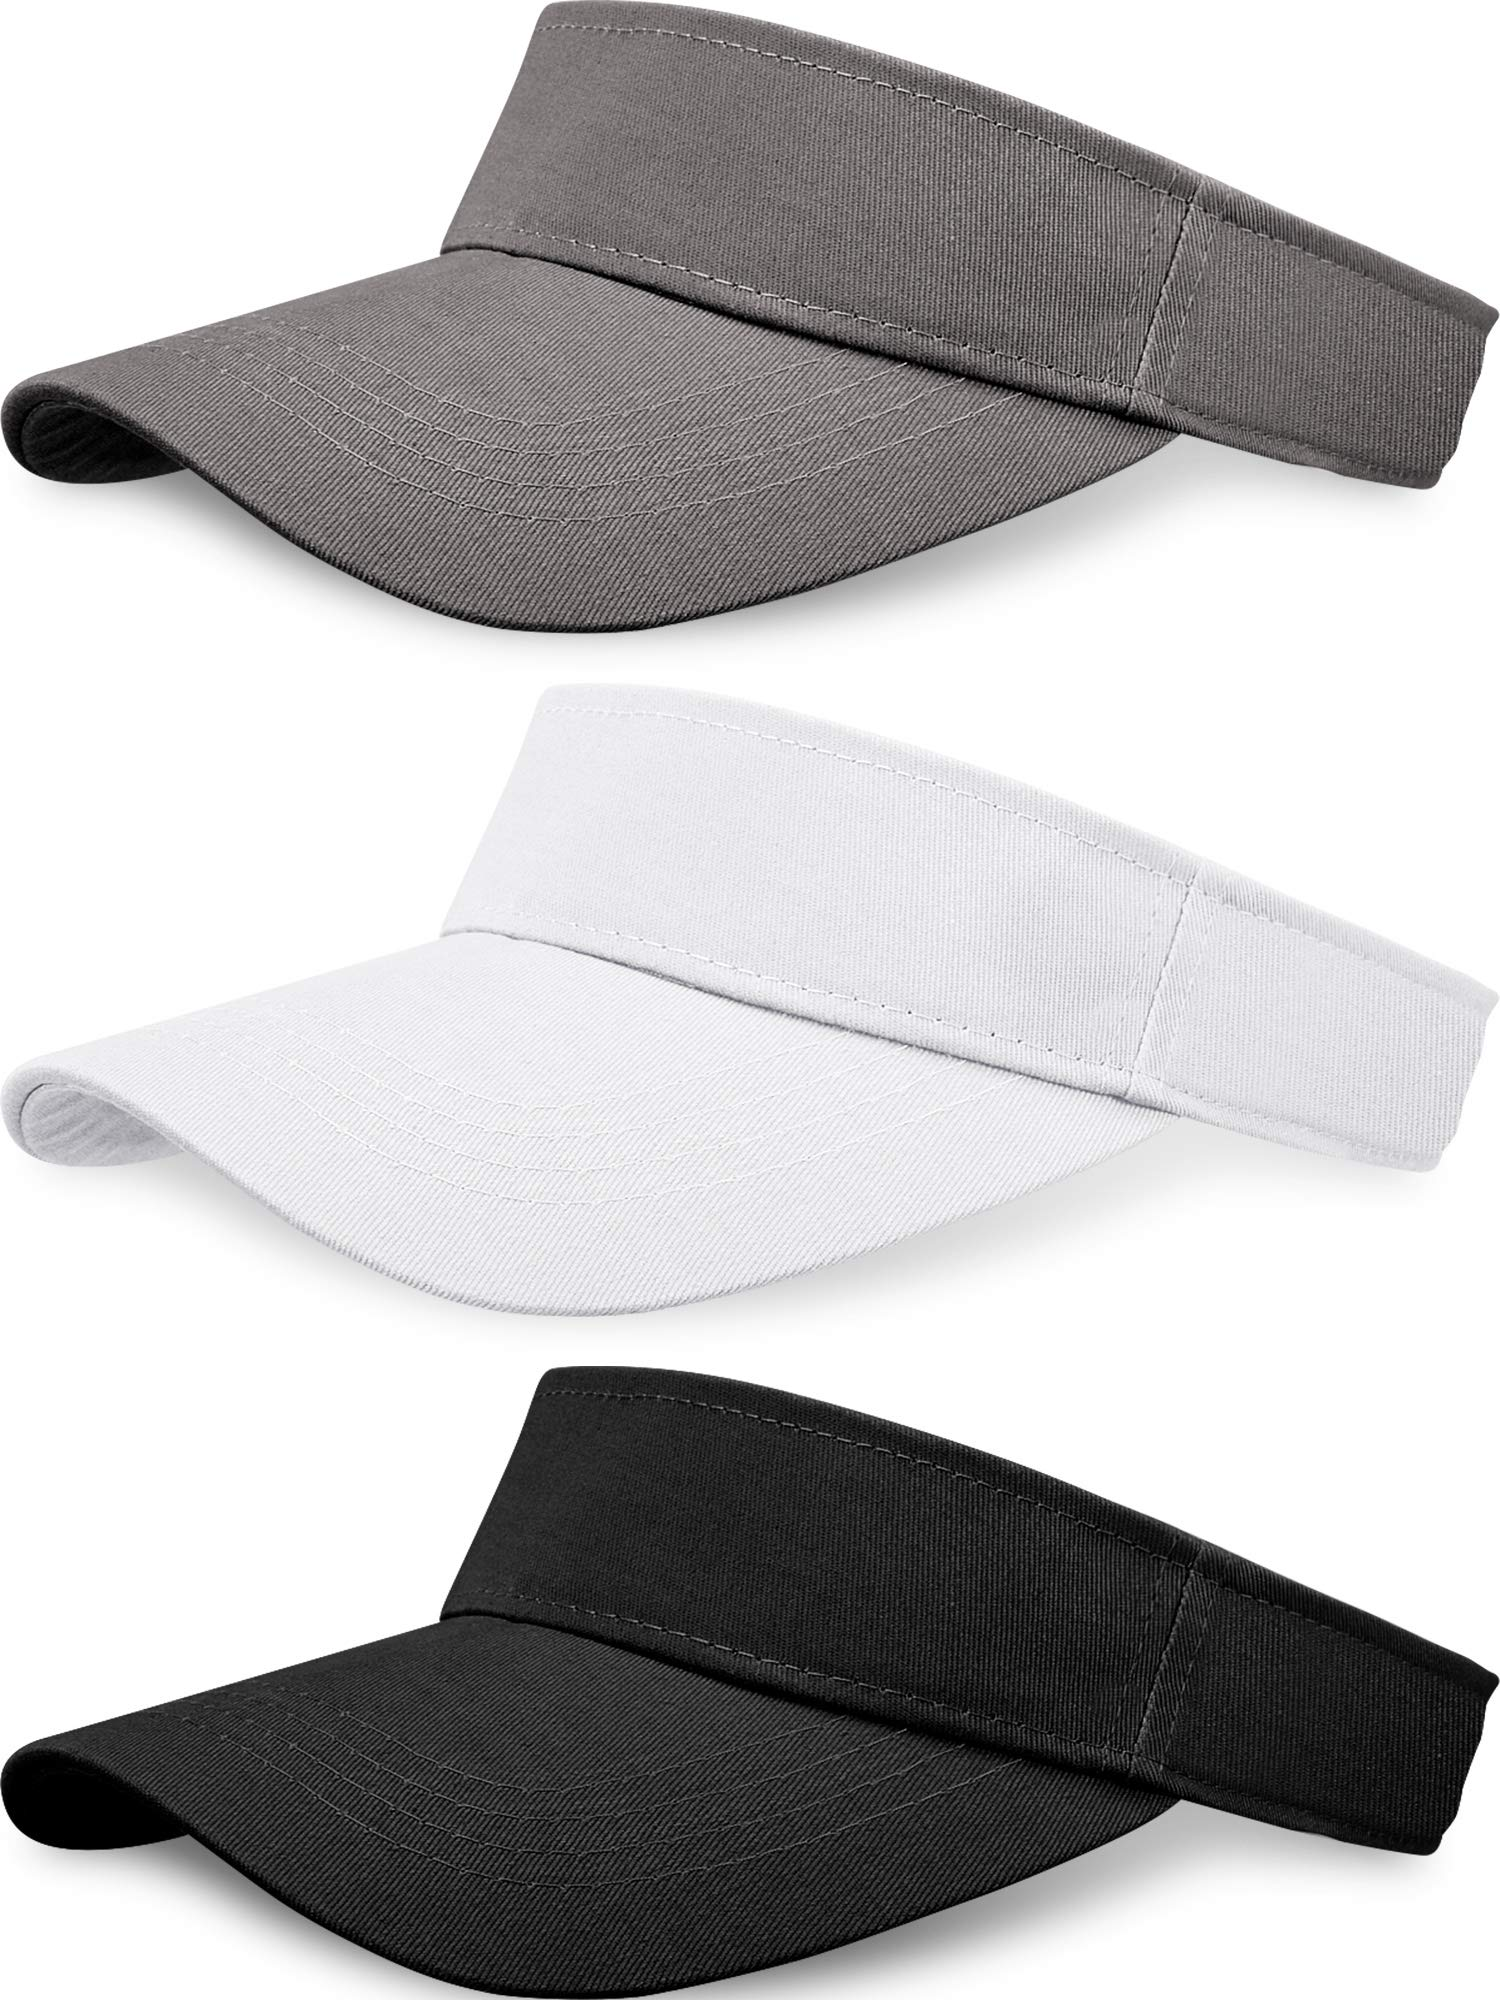 3 Pieces Sun Sports Visor Hats One Size Adjustable Cap for Women and Men (Black White Grey)